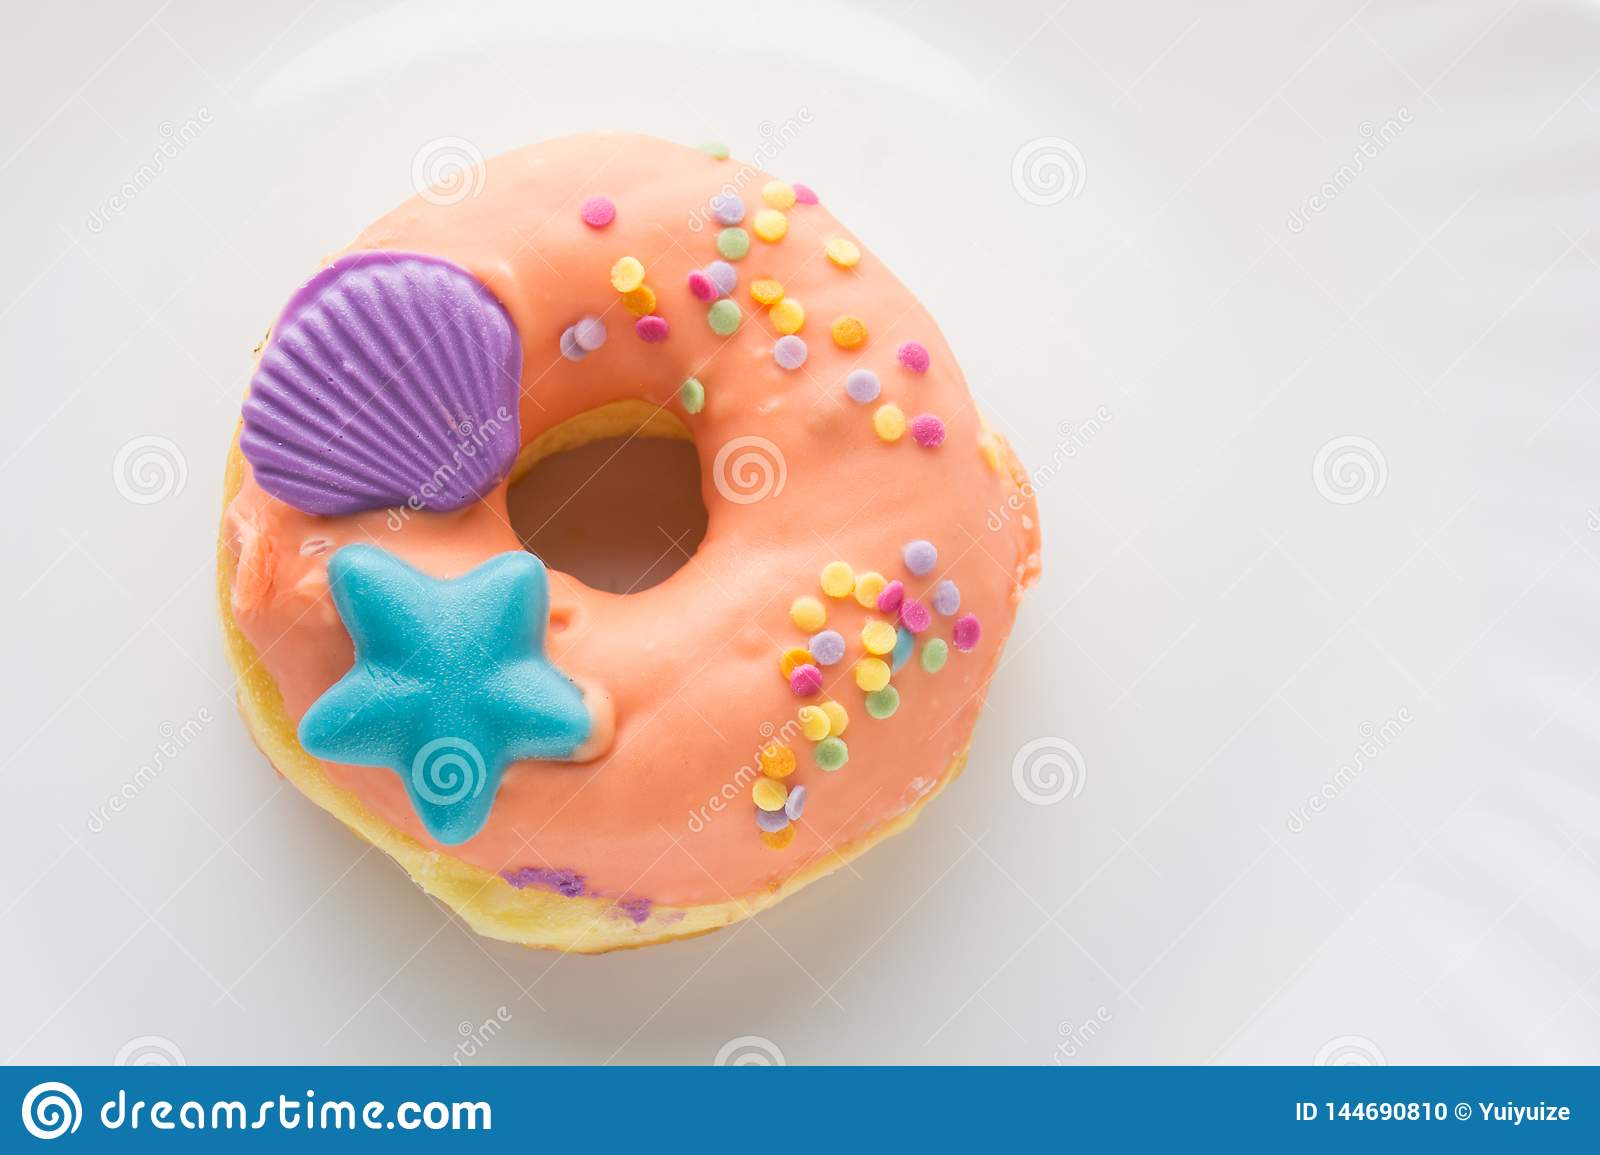 Donut on a white plate